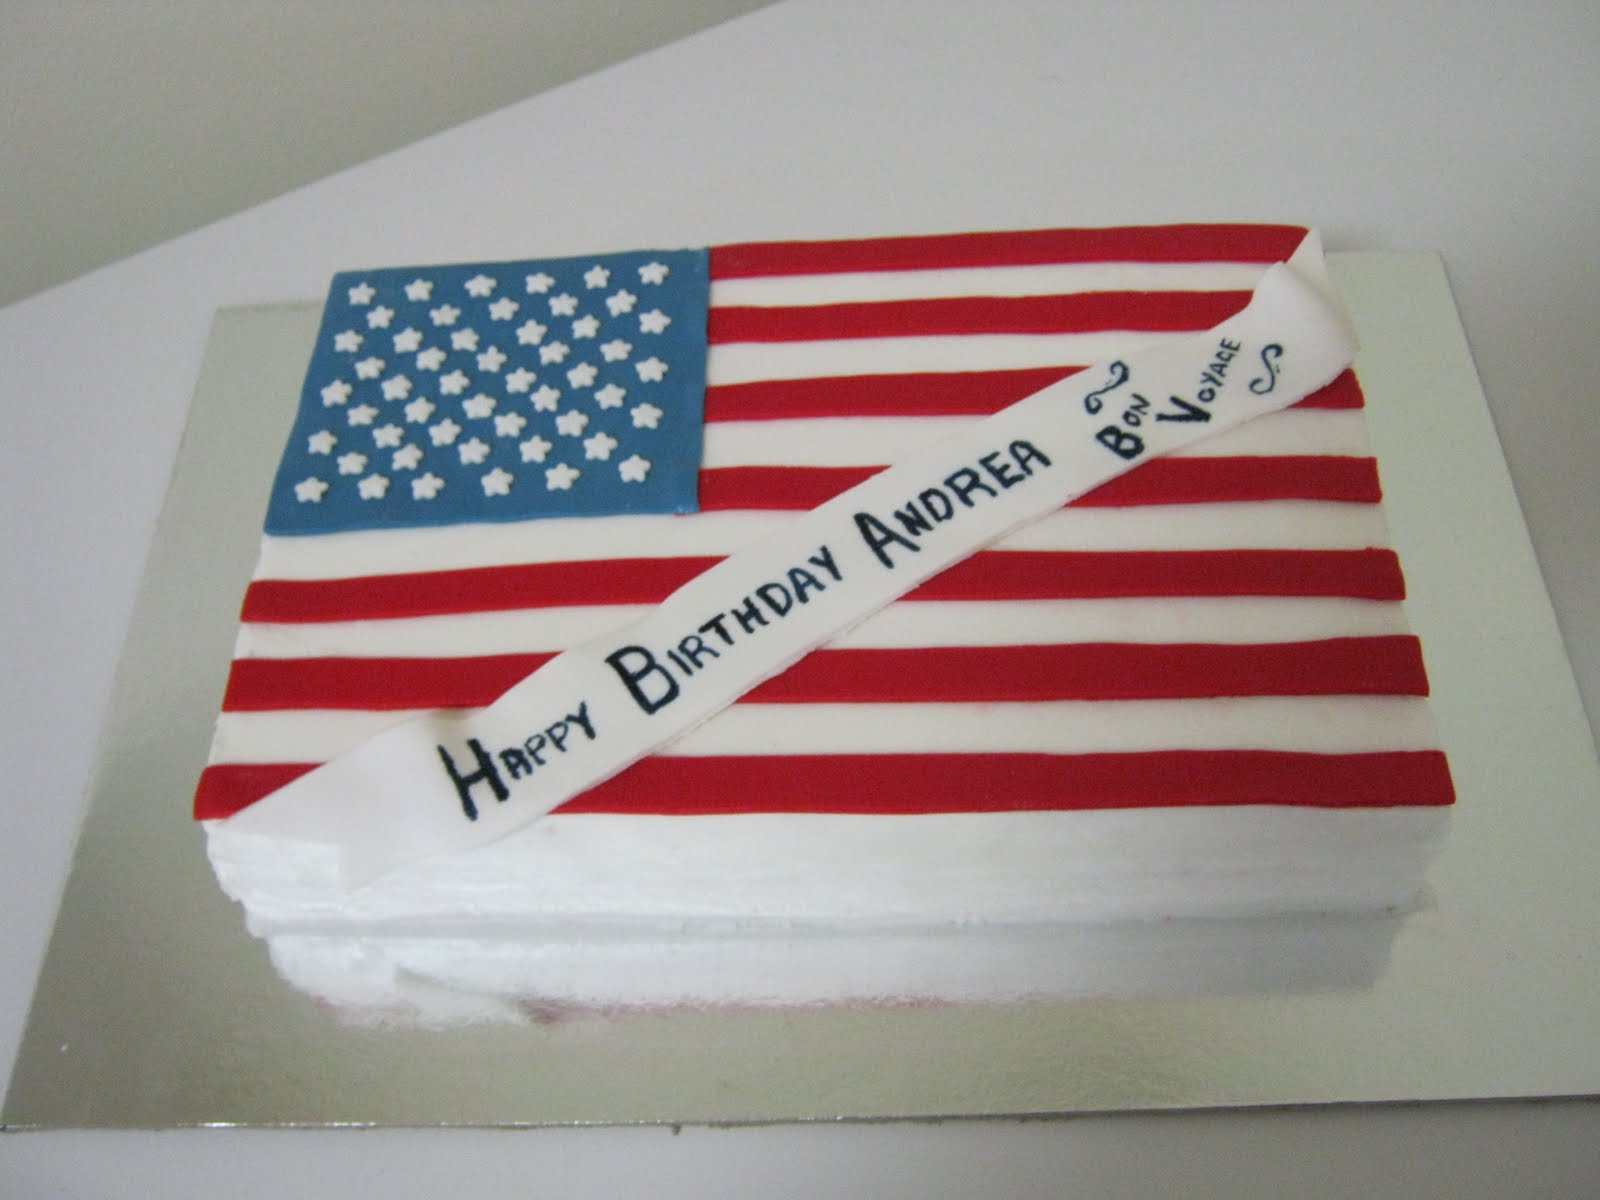 Driftwood Cakes - Cake Baker and Decorator: American Flag Cake